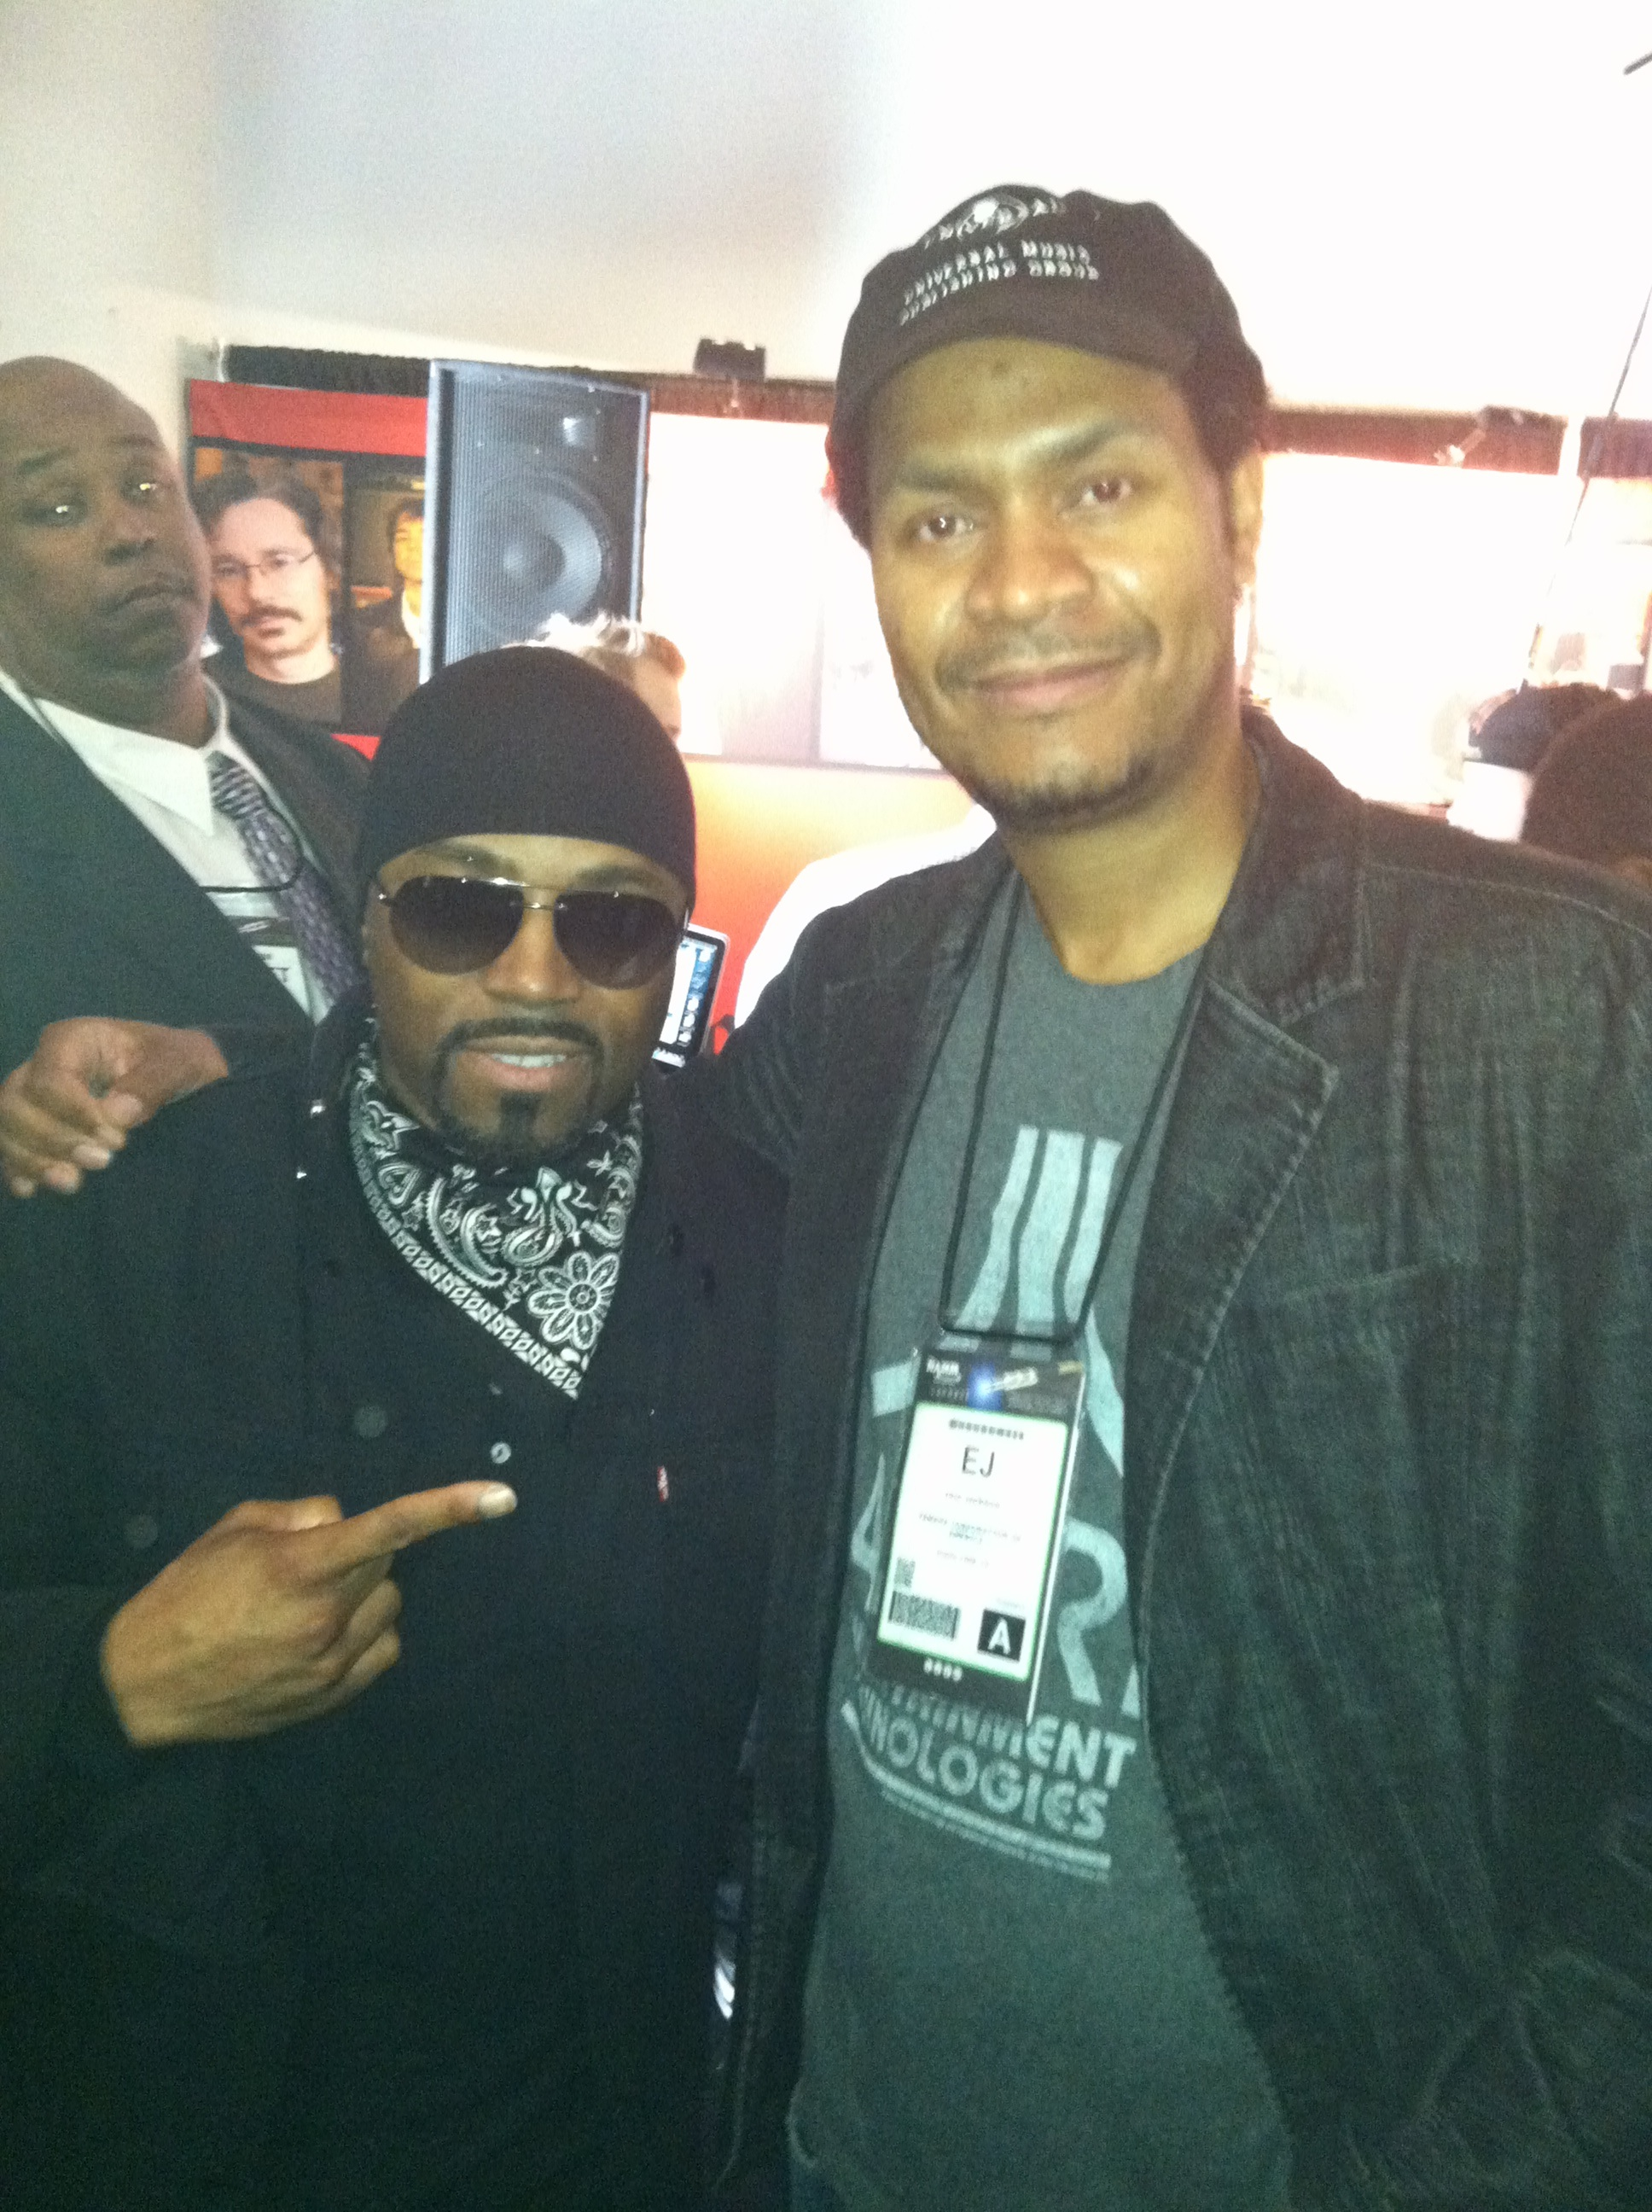 Teddy Riley and ej.jpg